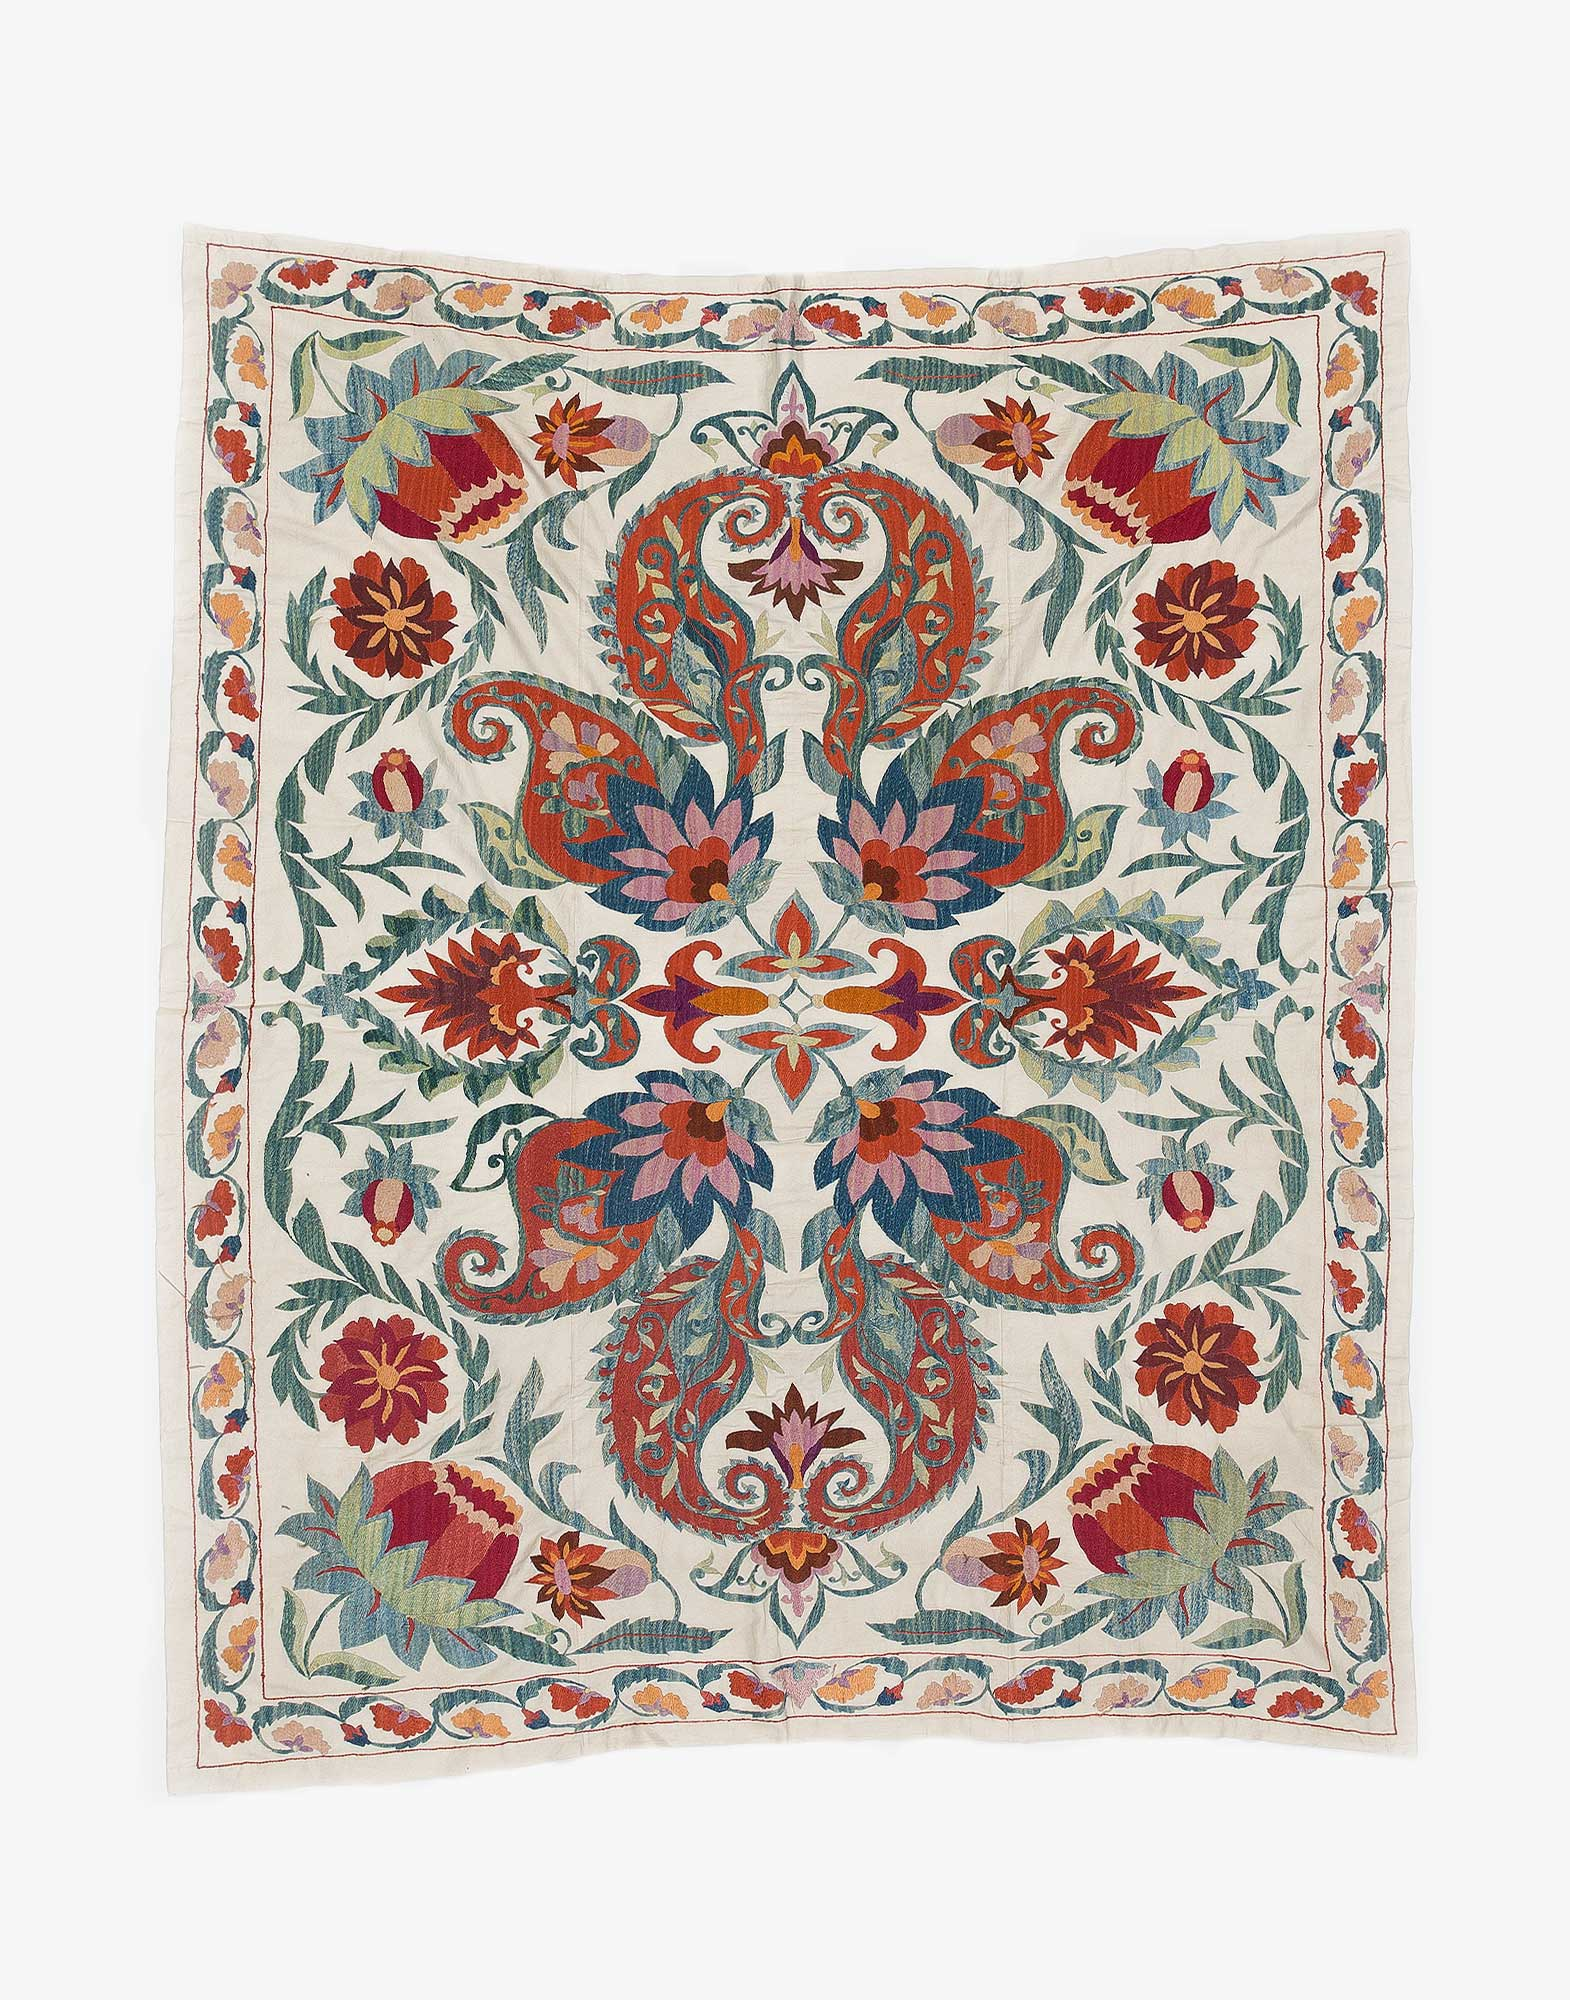 Uzbek Suzani Embroidered Silk Bed Cover